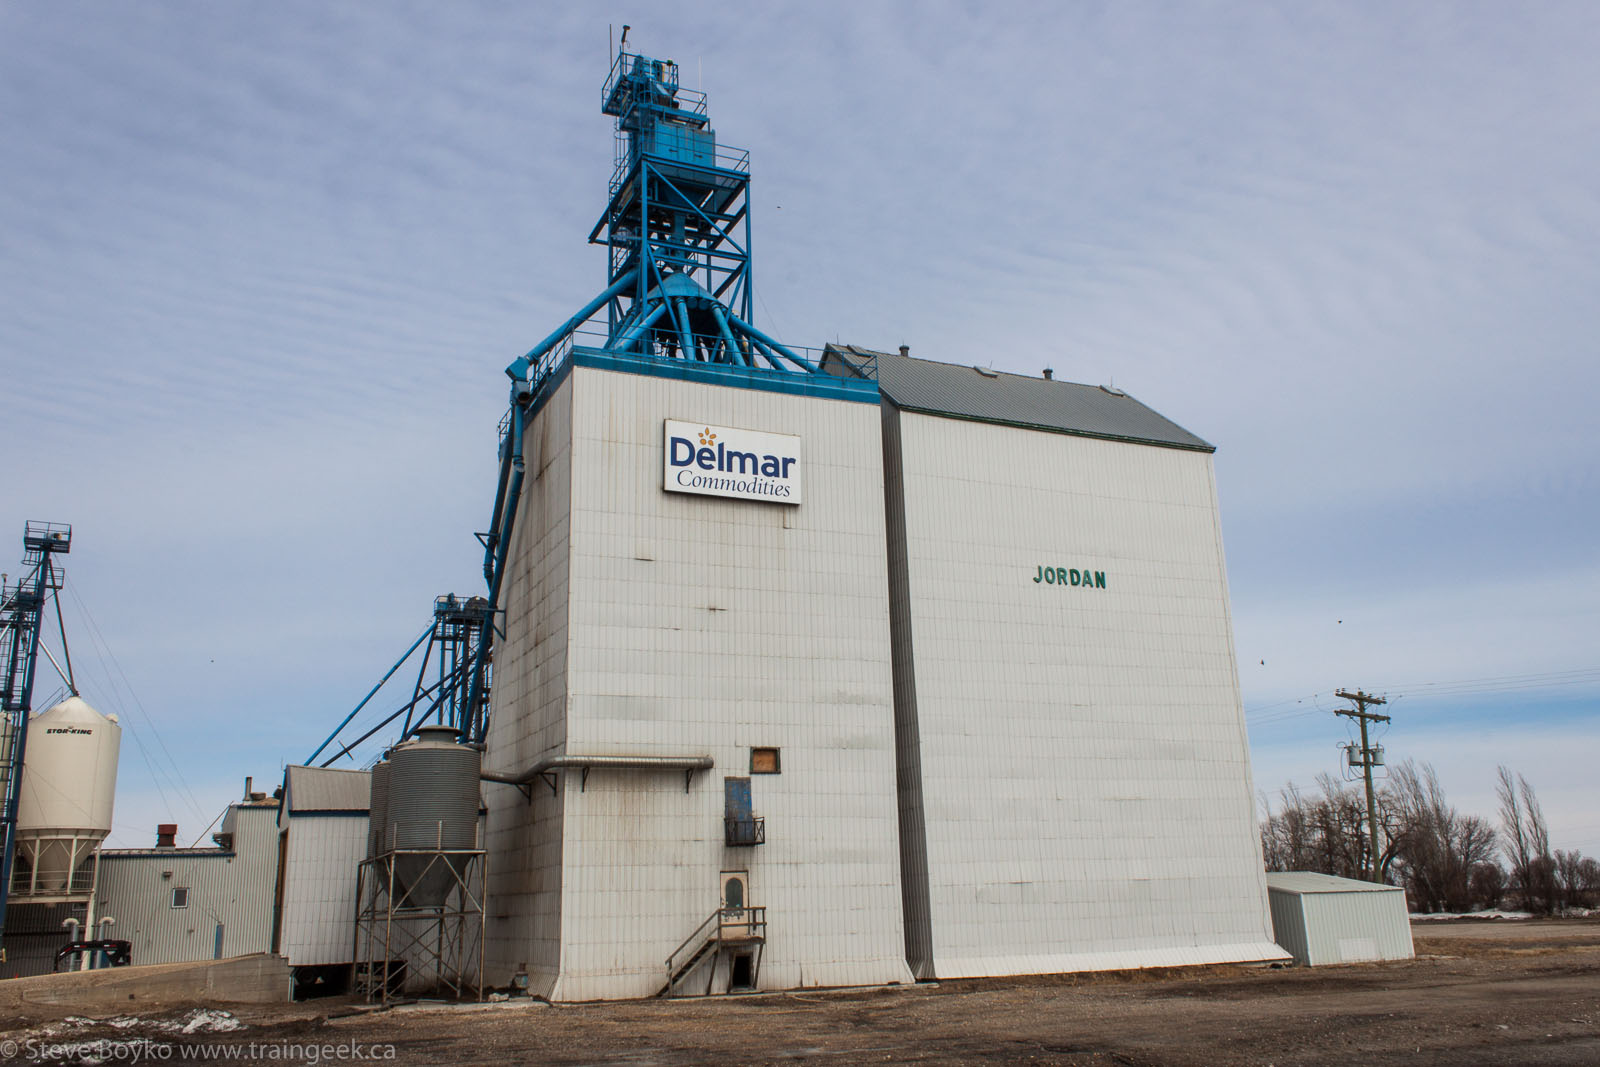 The Delmar Commodities grain elevator near Jordan, Manitoba 2014/04/18